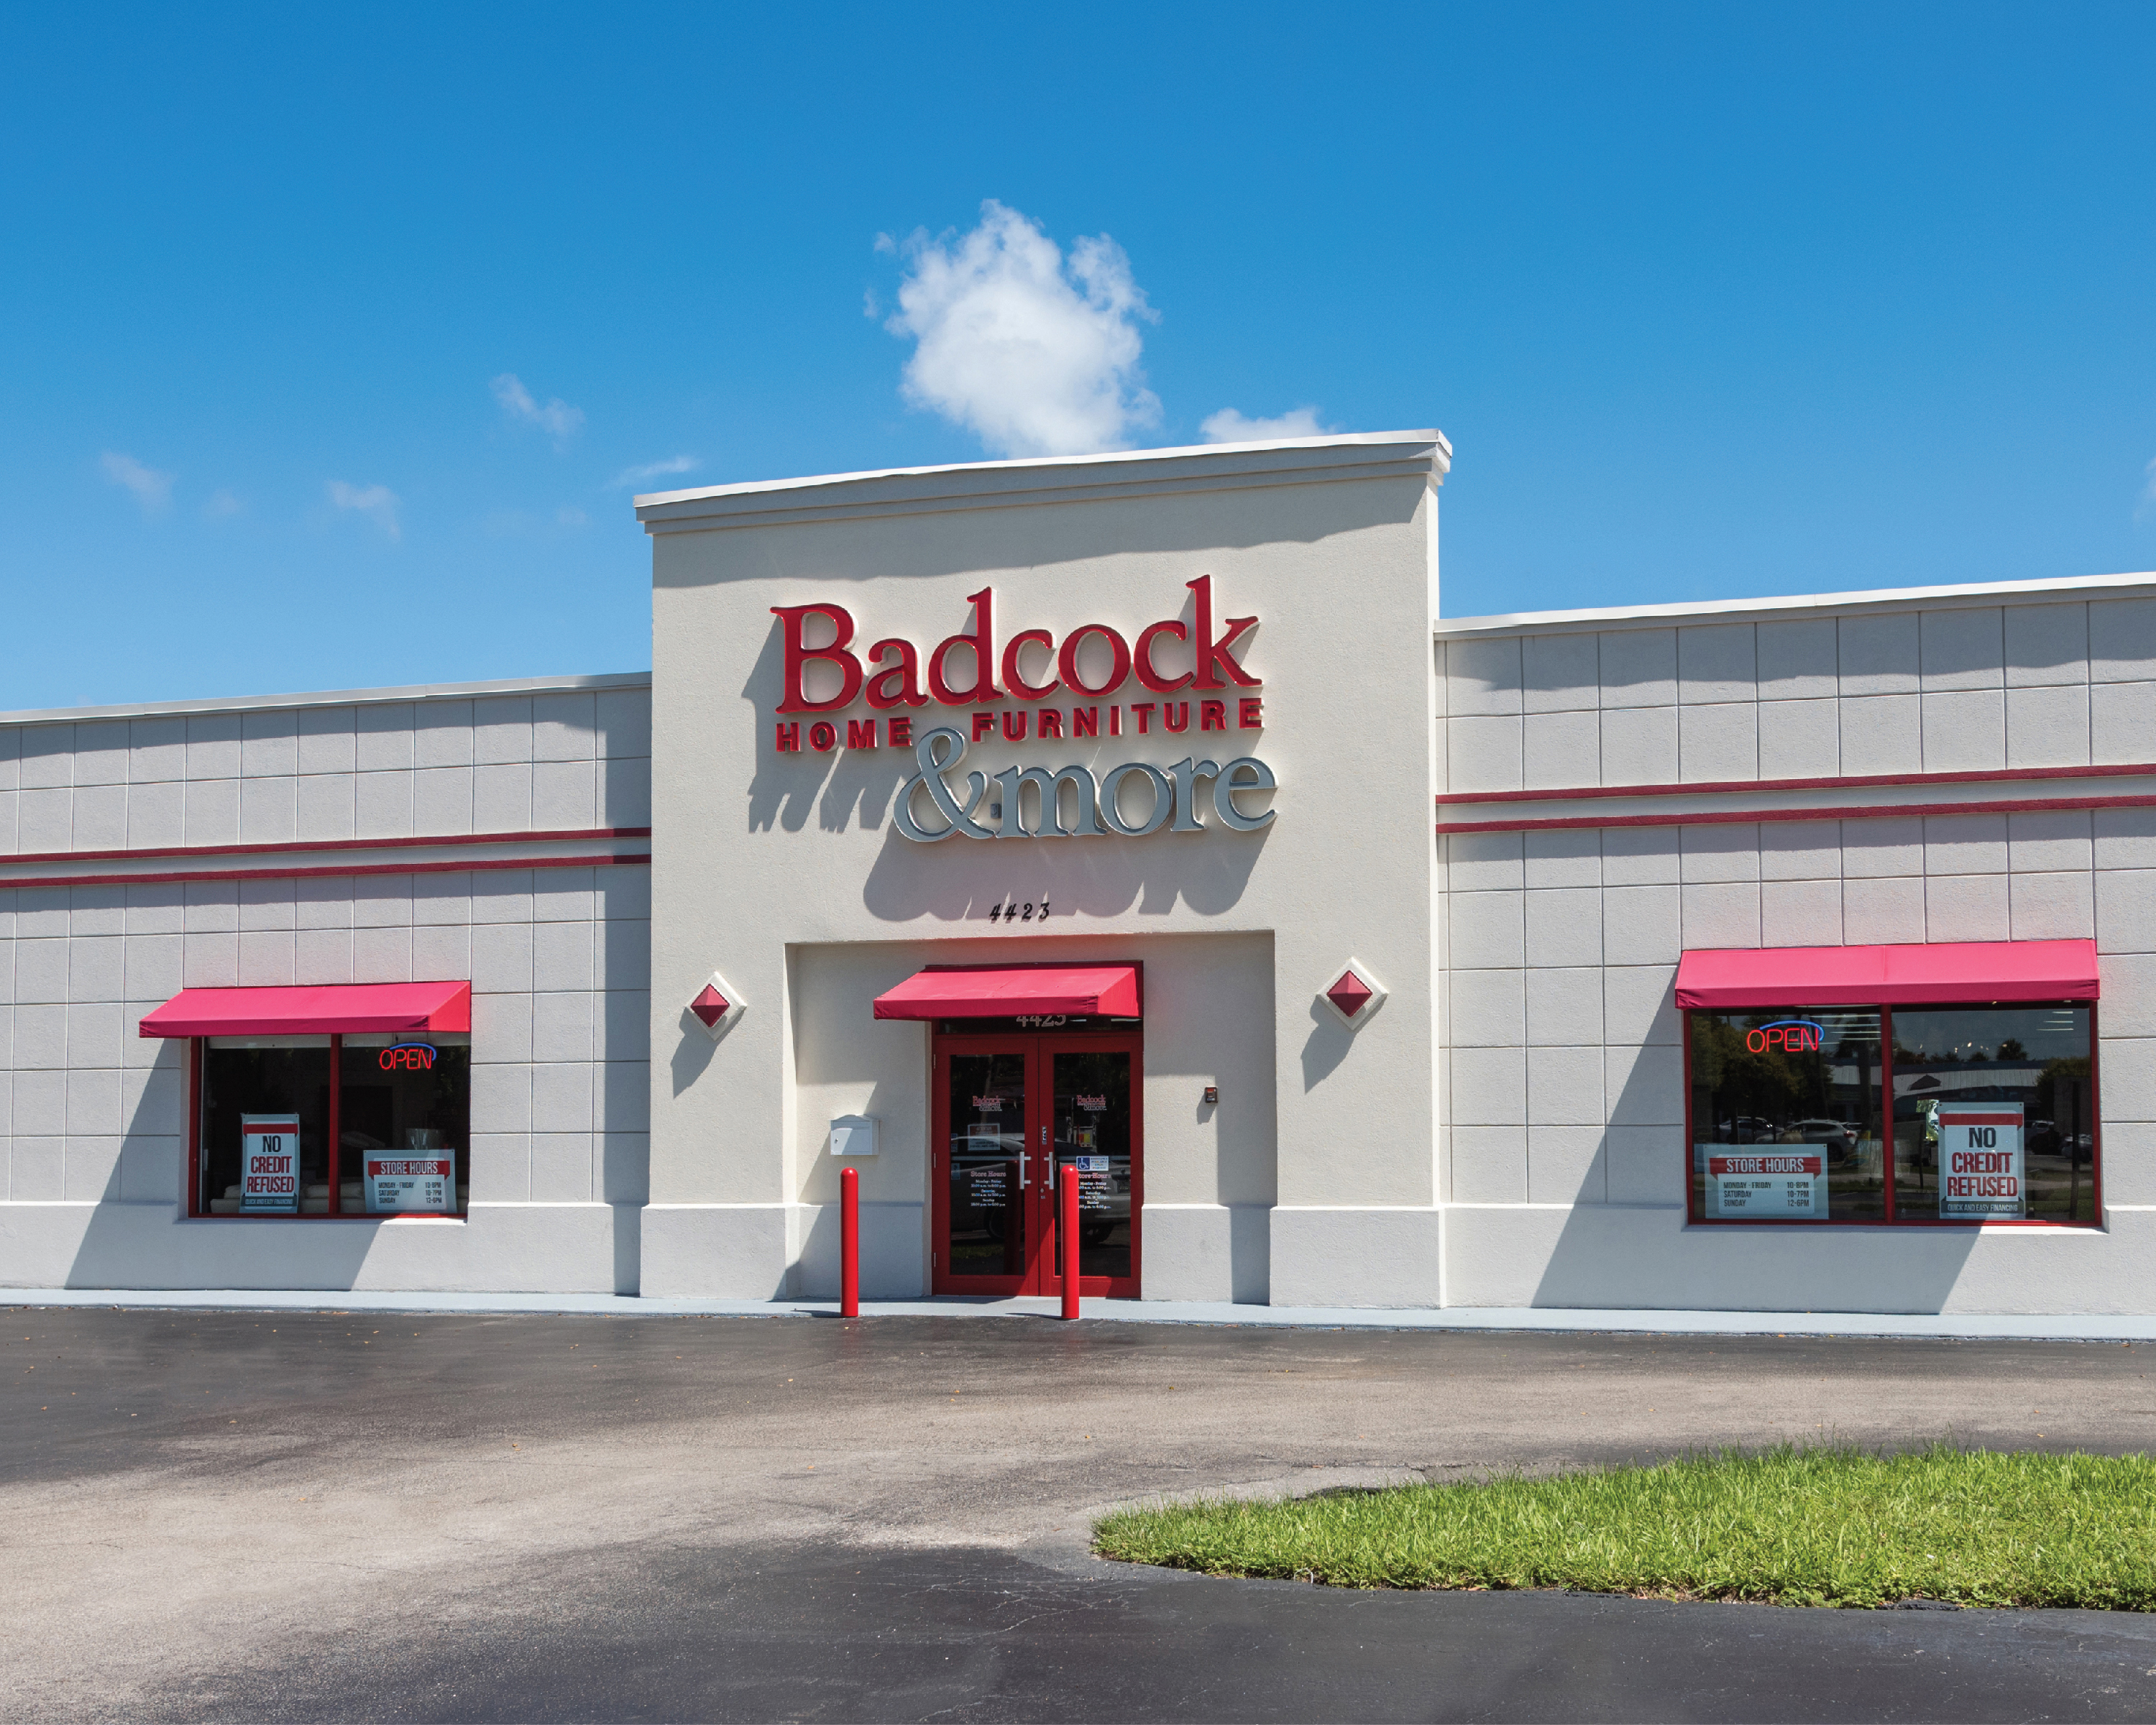 Badcock Home Furniture U0026 More Of South Florida West Palm Beach, FL 33409    YP.com